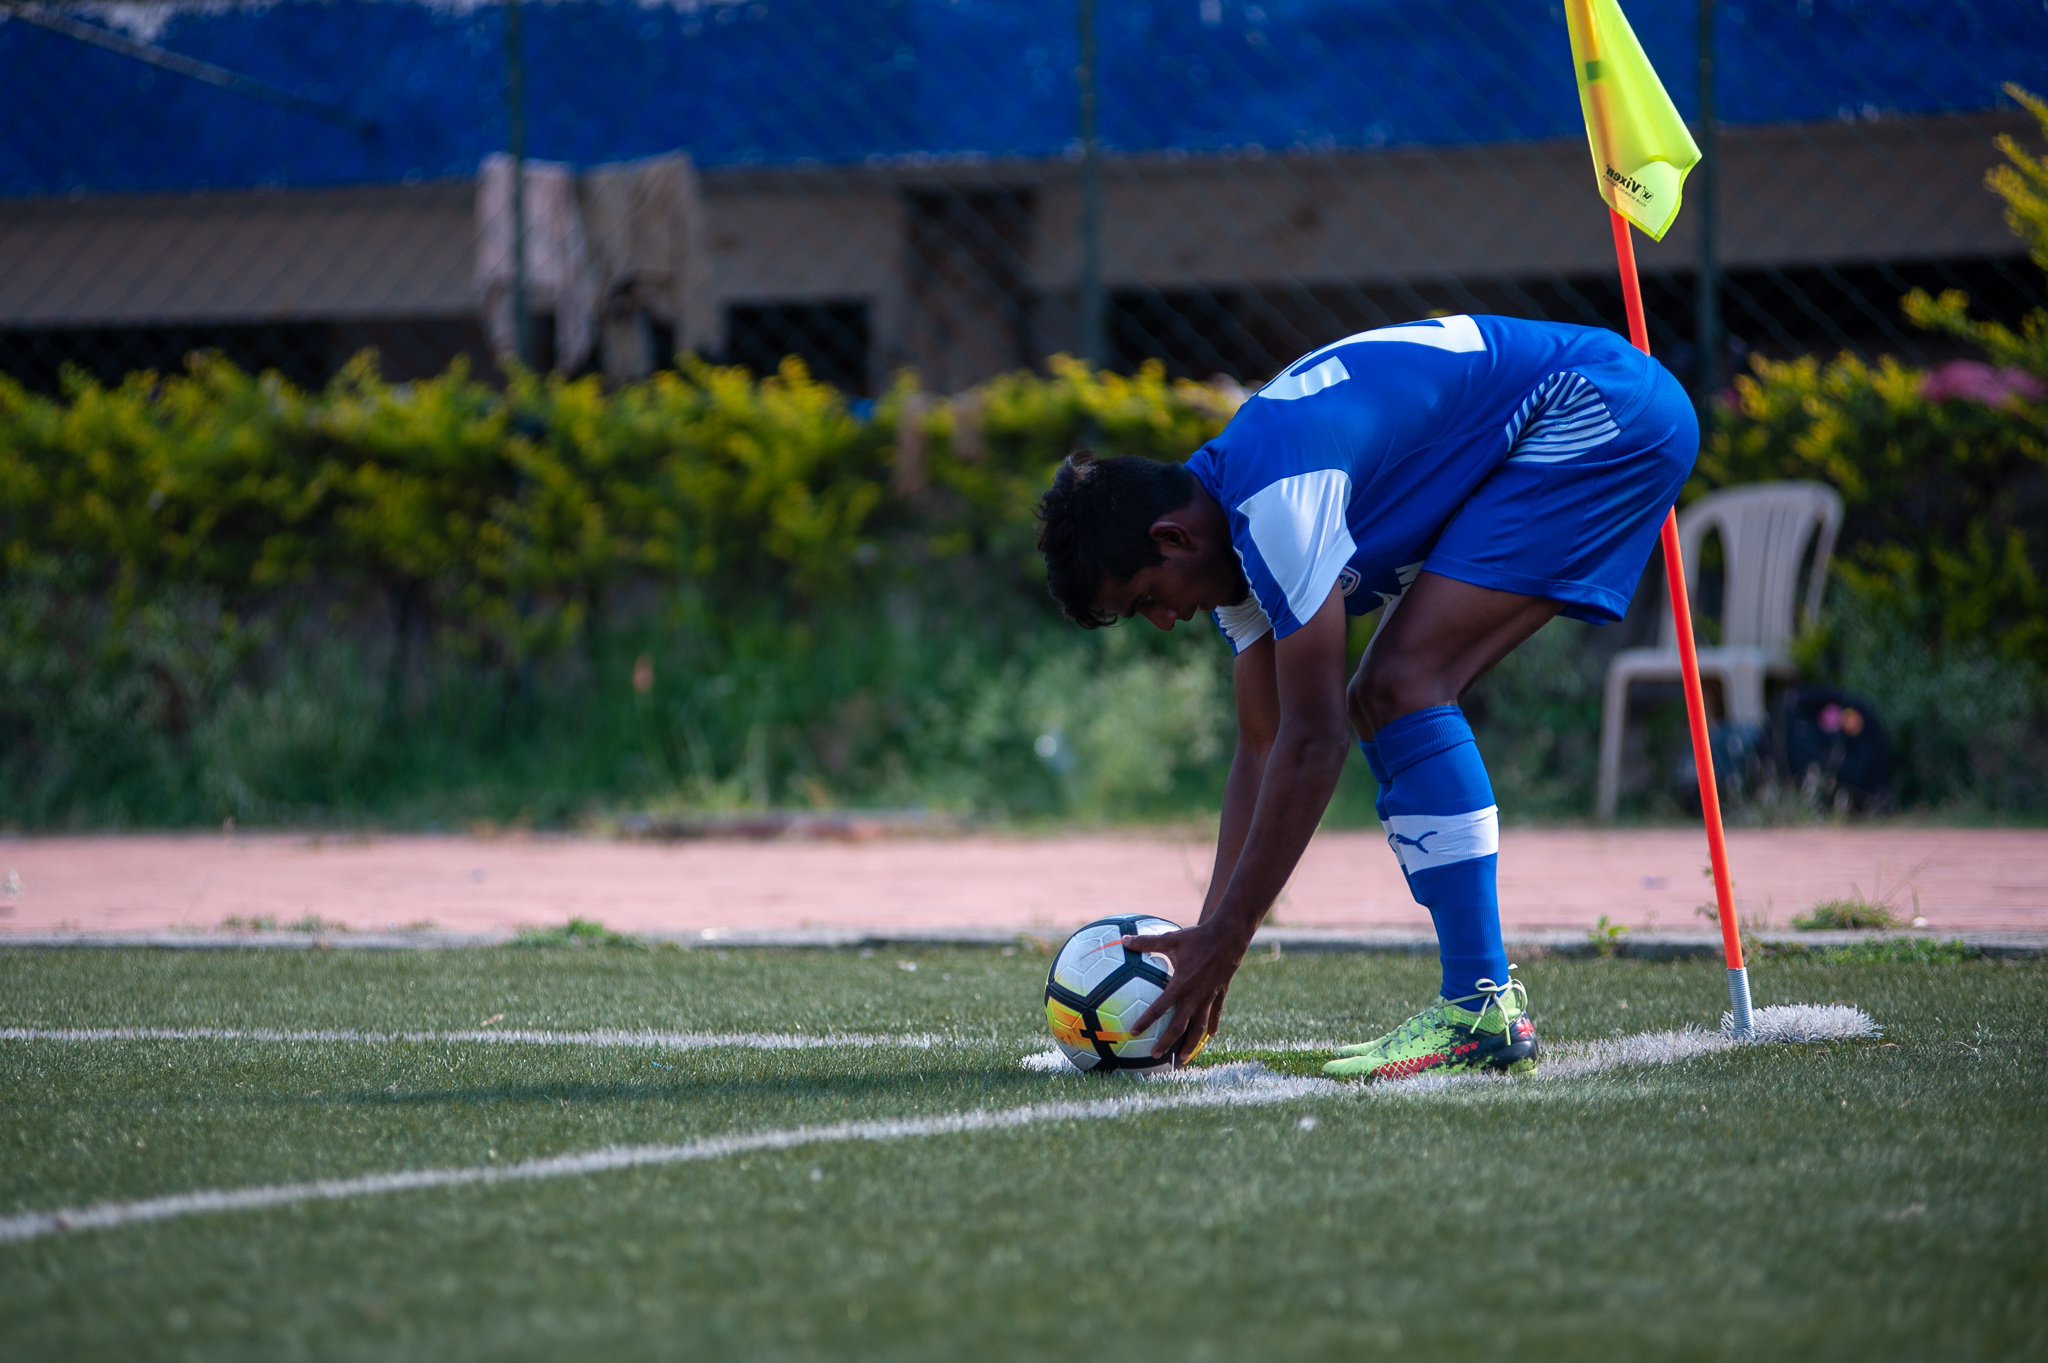 The left winger of Bengaluru FC B bends low to place the ball at the corner flag to take a corner.